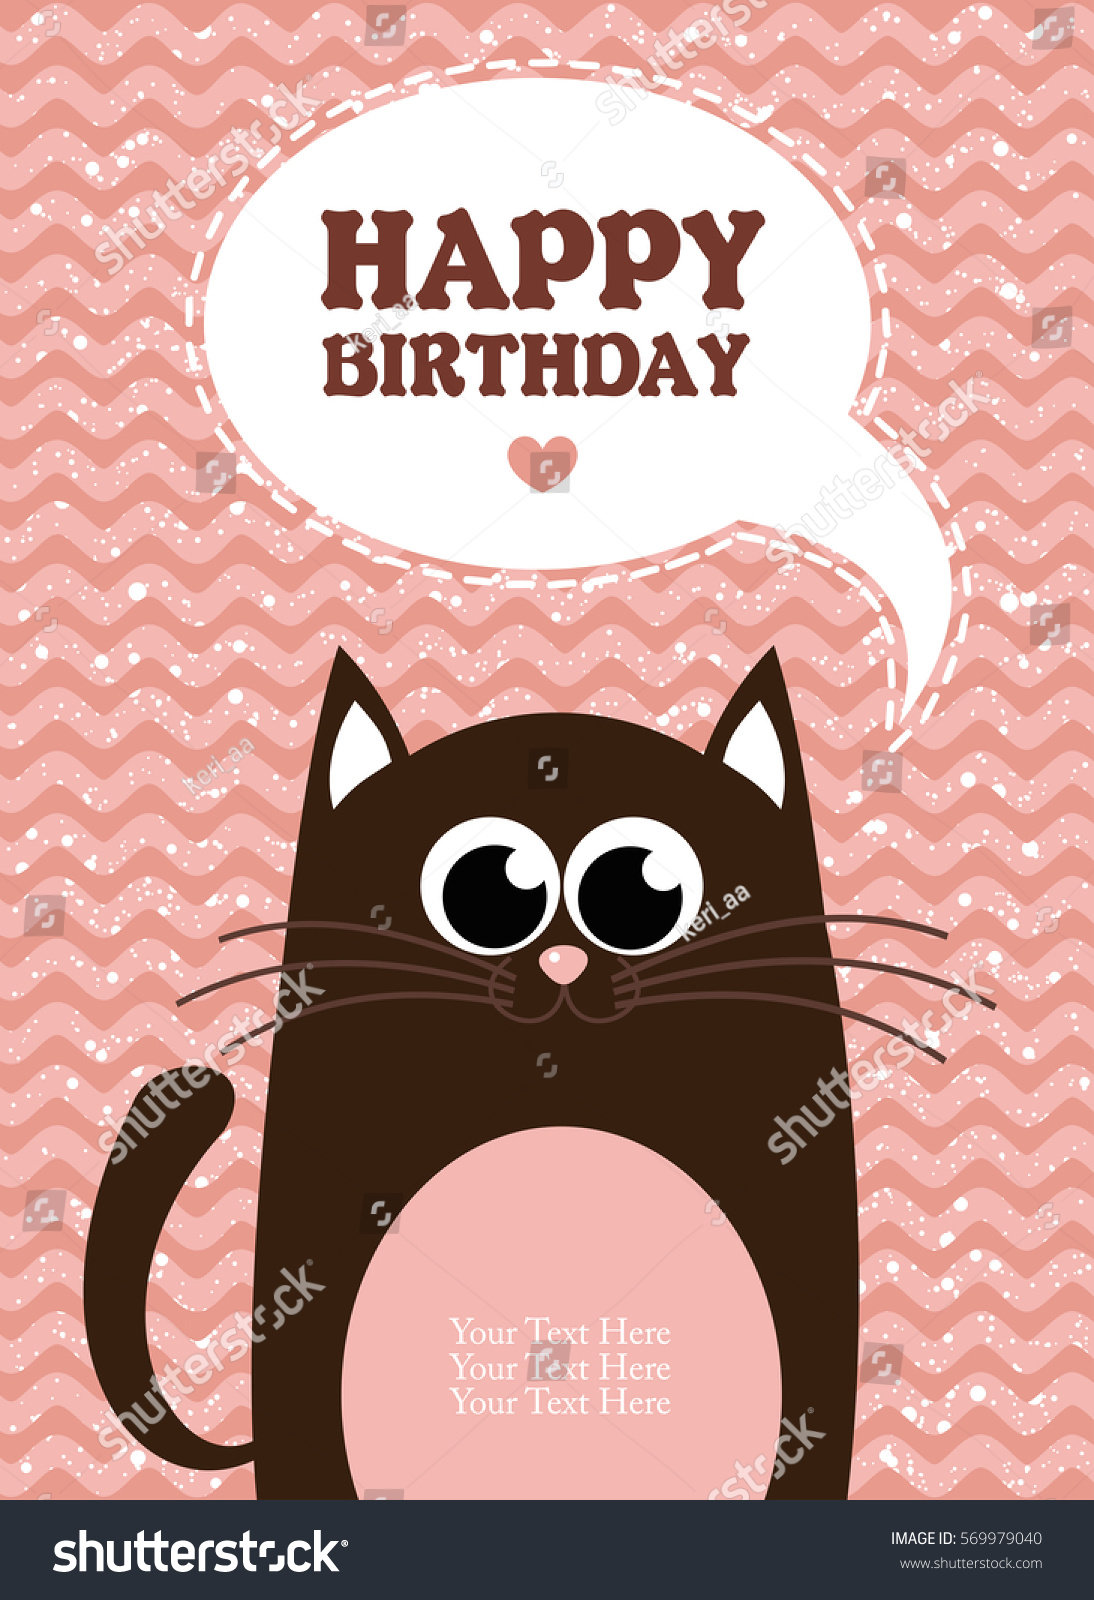 cute creative cards templates with happy birthday theme design hand drawn card for birthday